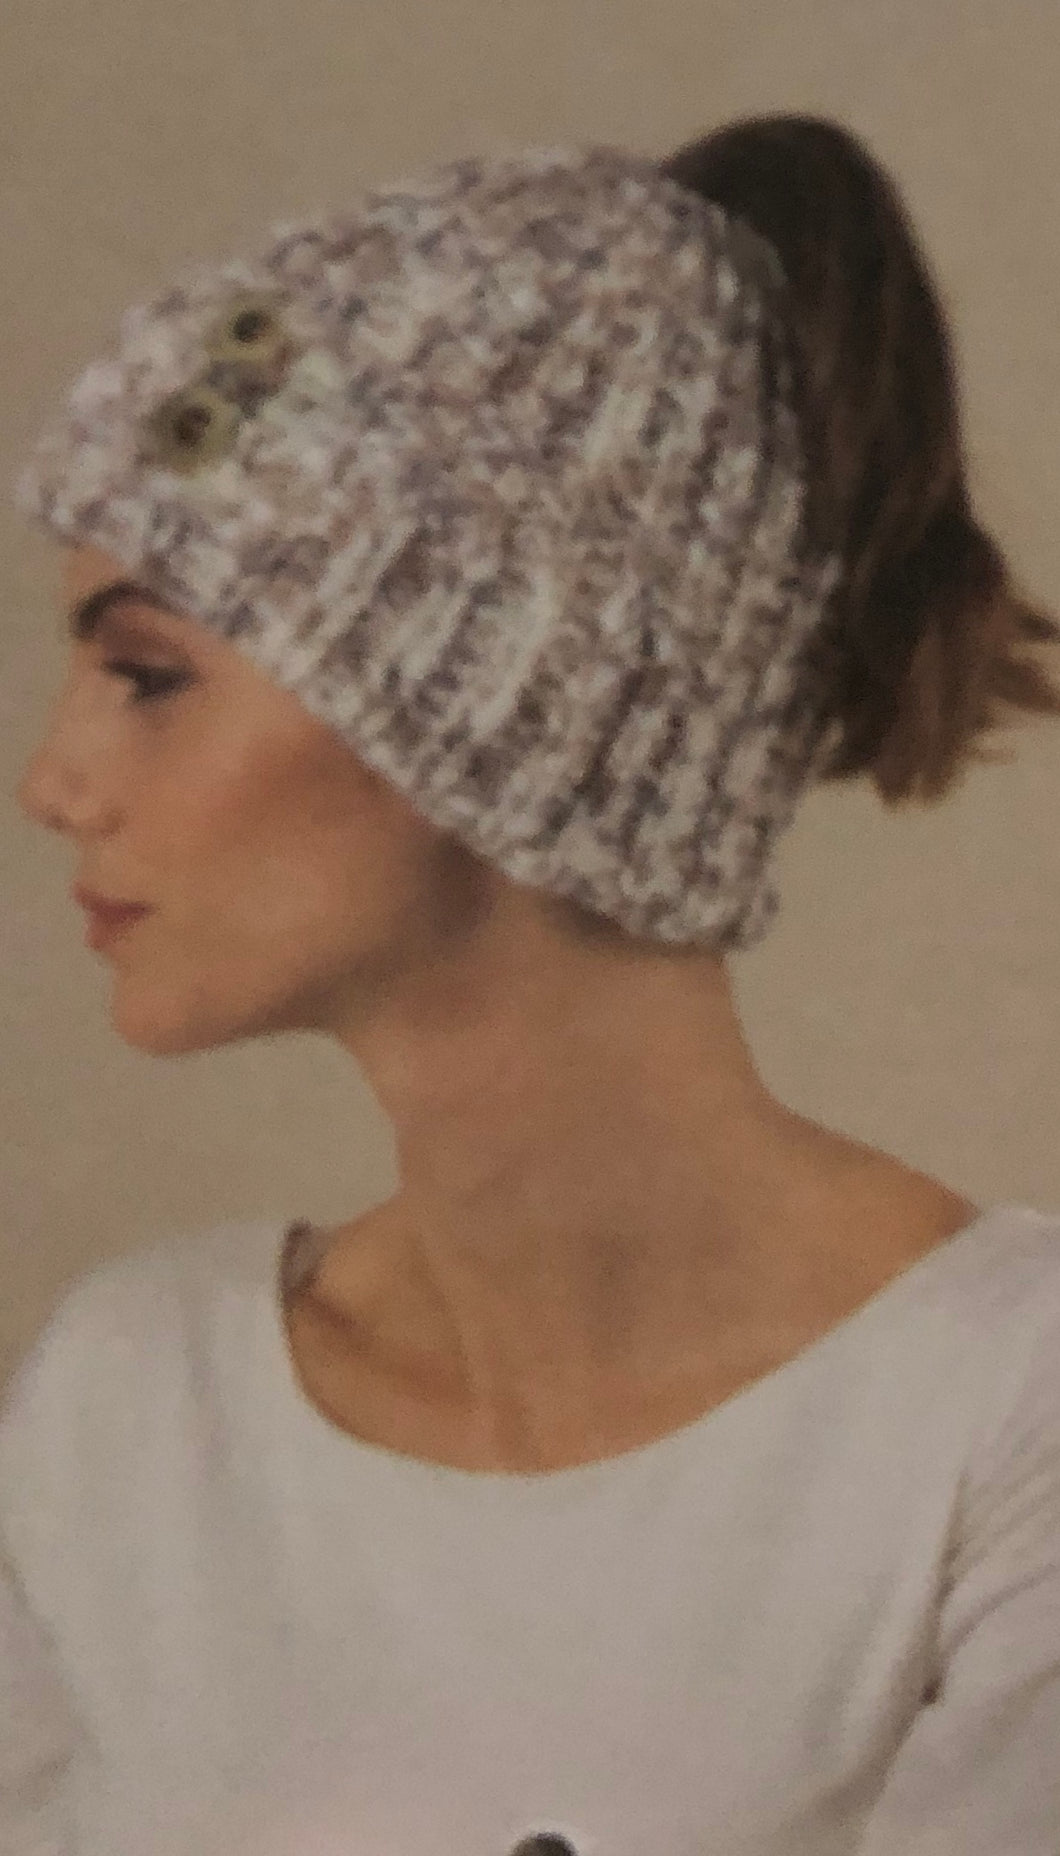 Knitted Winter Hat with Hole